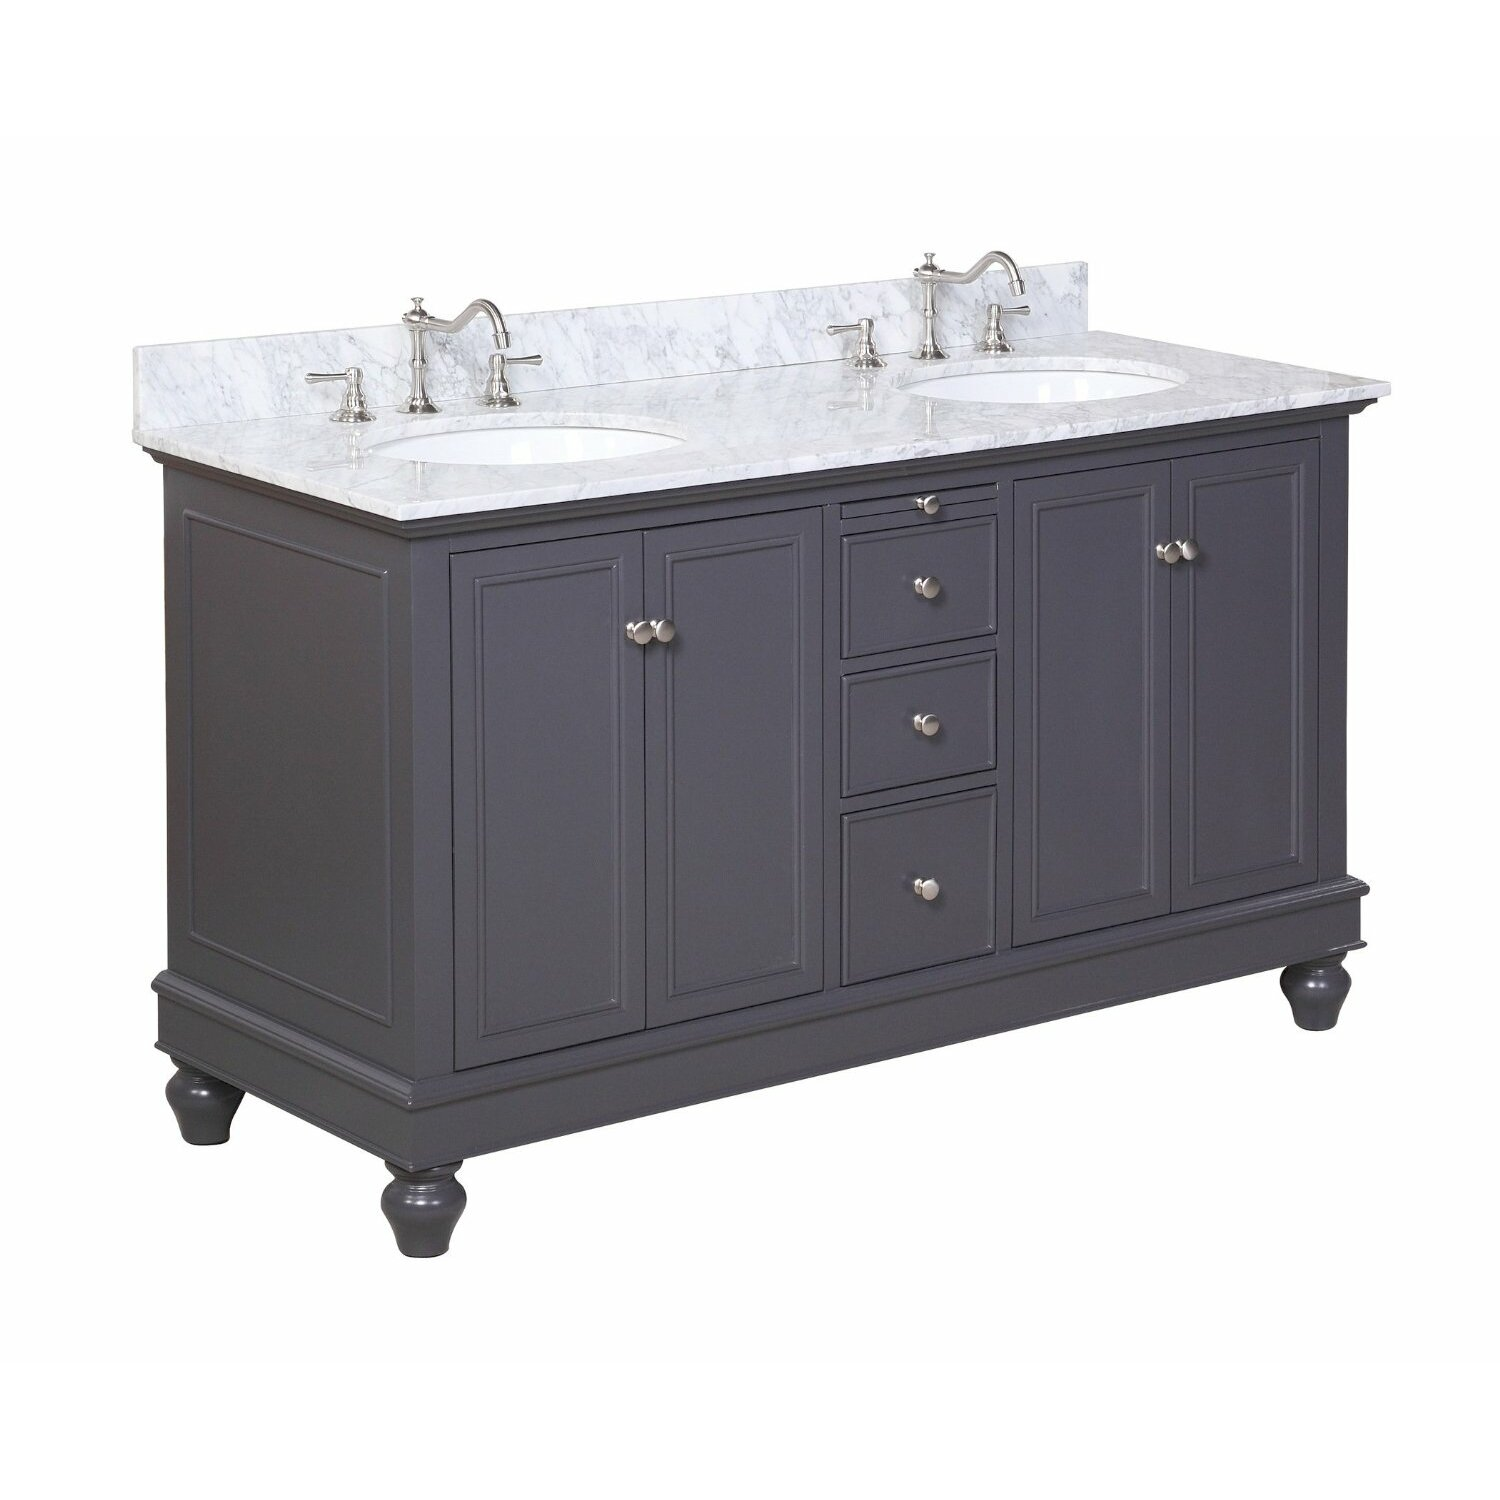 Kbc bella 60 double bathroom vanity set reviews wayfair for Bath and vanity set